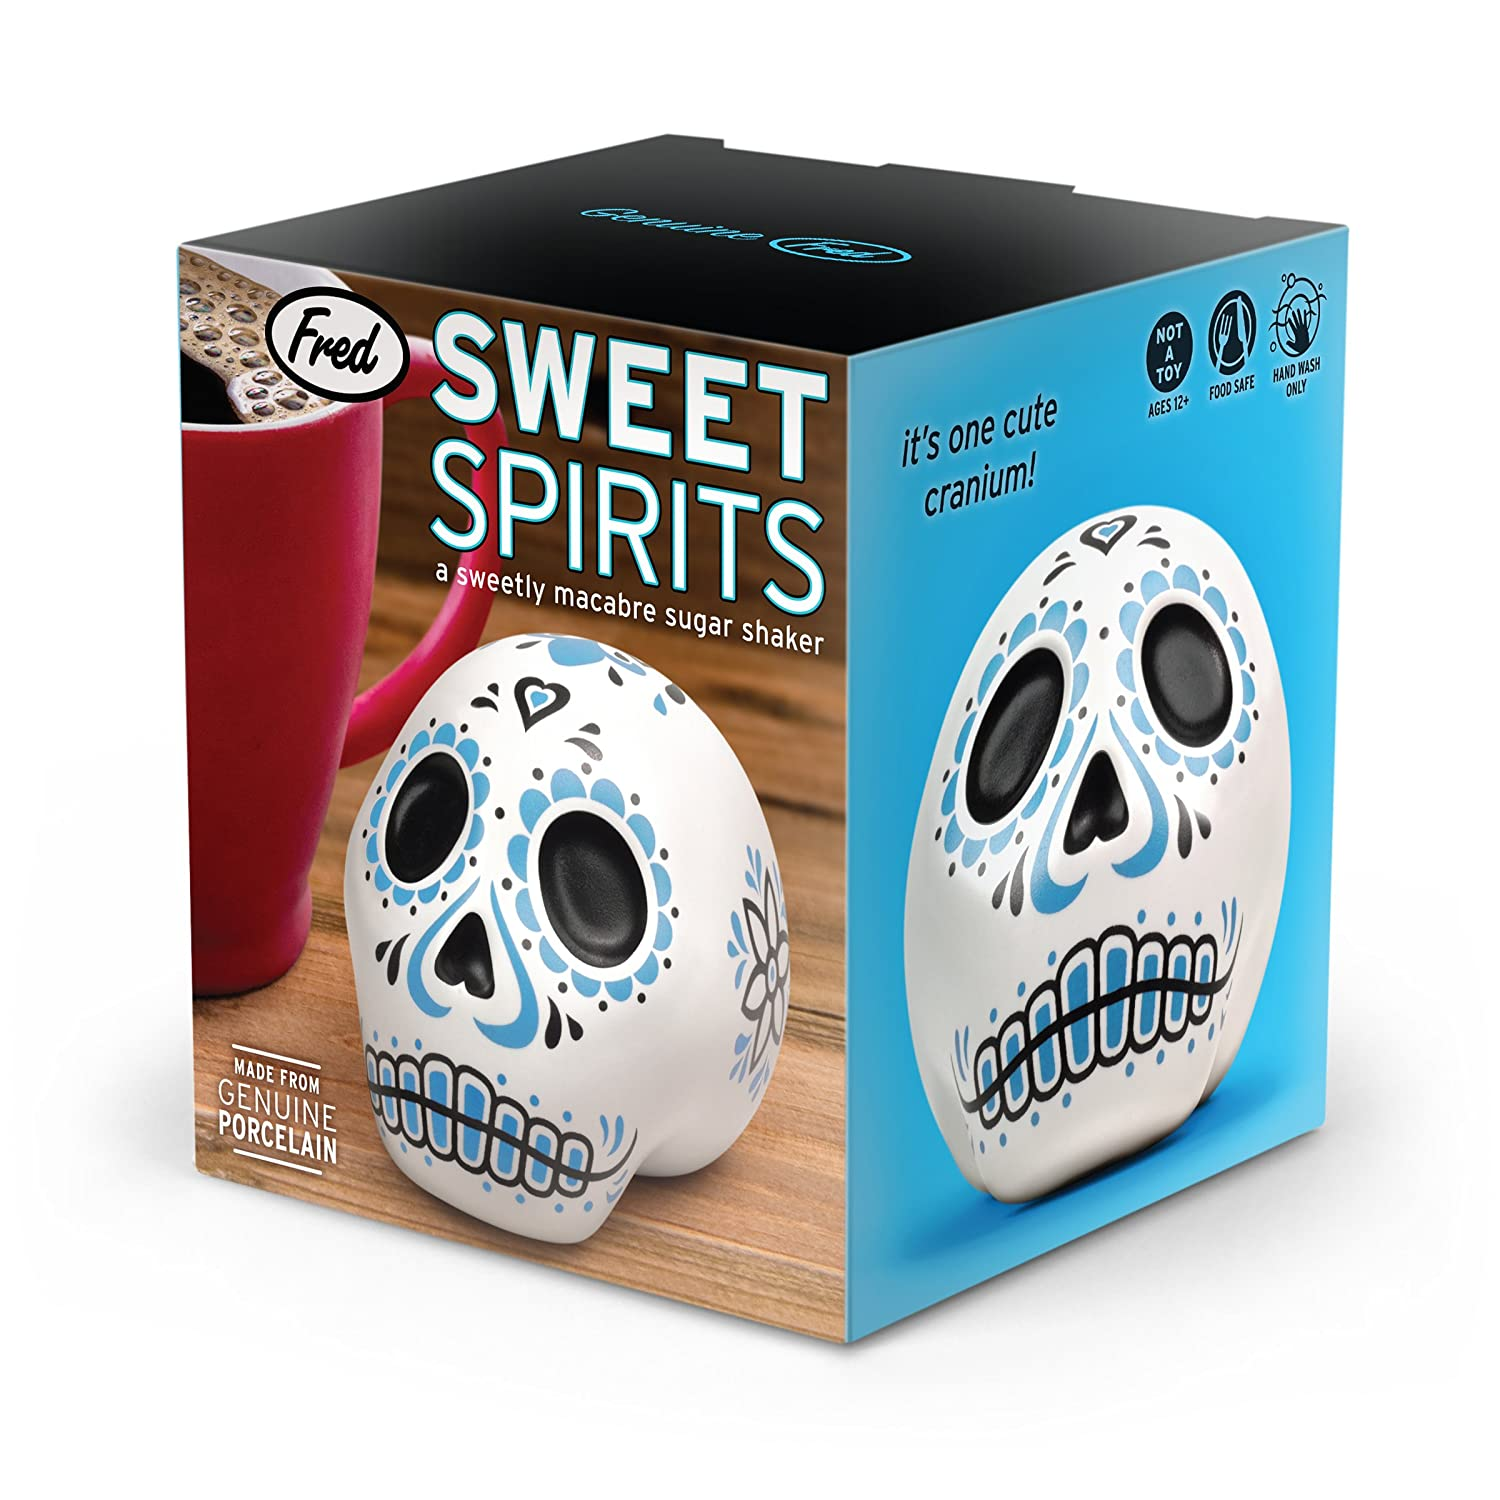 Amazon.com: Fred SWEET SPIRITS Day of the Dead Sugar Shaker: Sugar ...